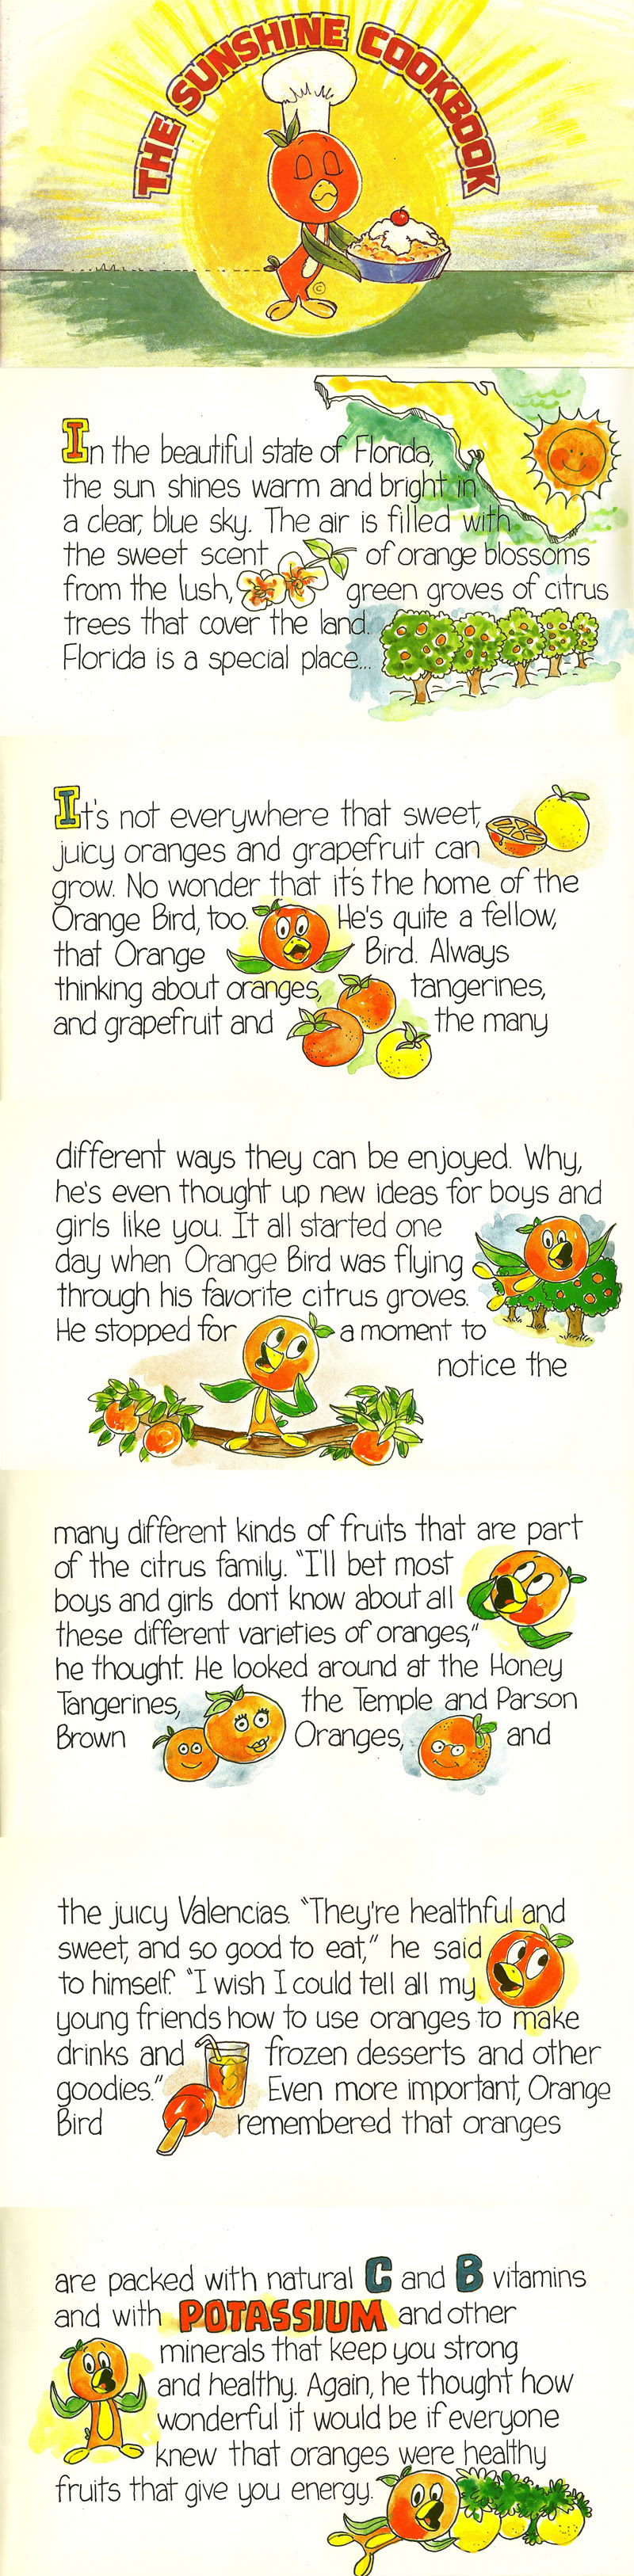 Disney's Orange Bird - The Sunshine Cookbook